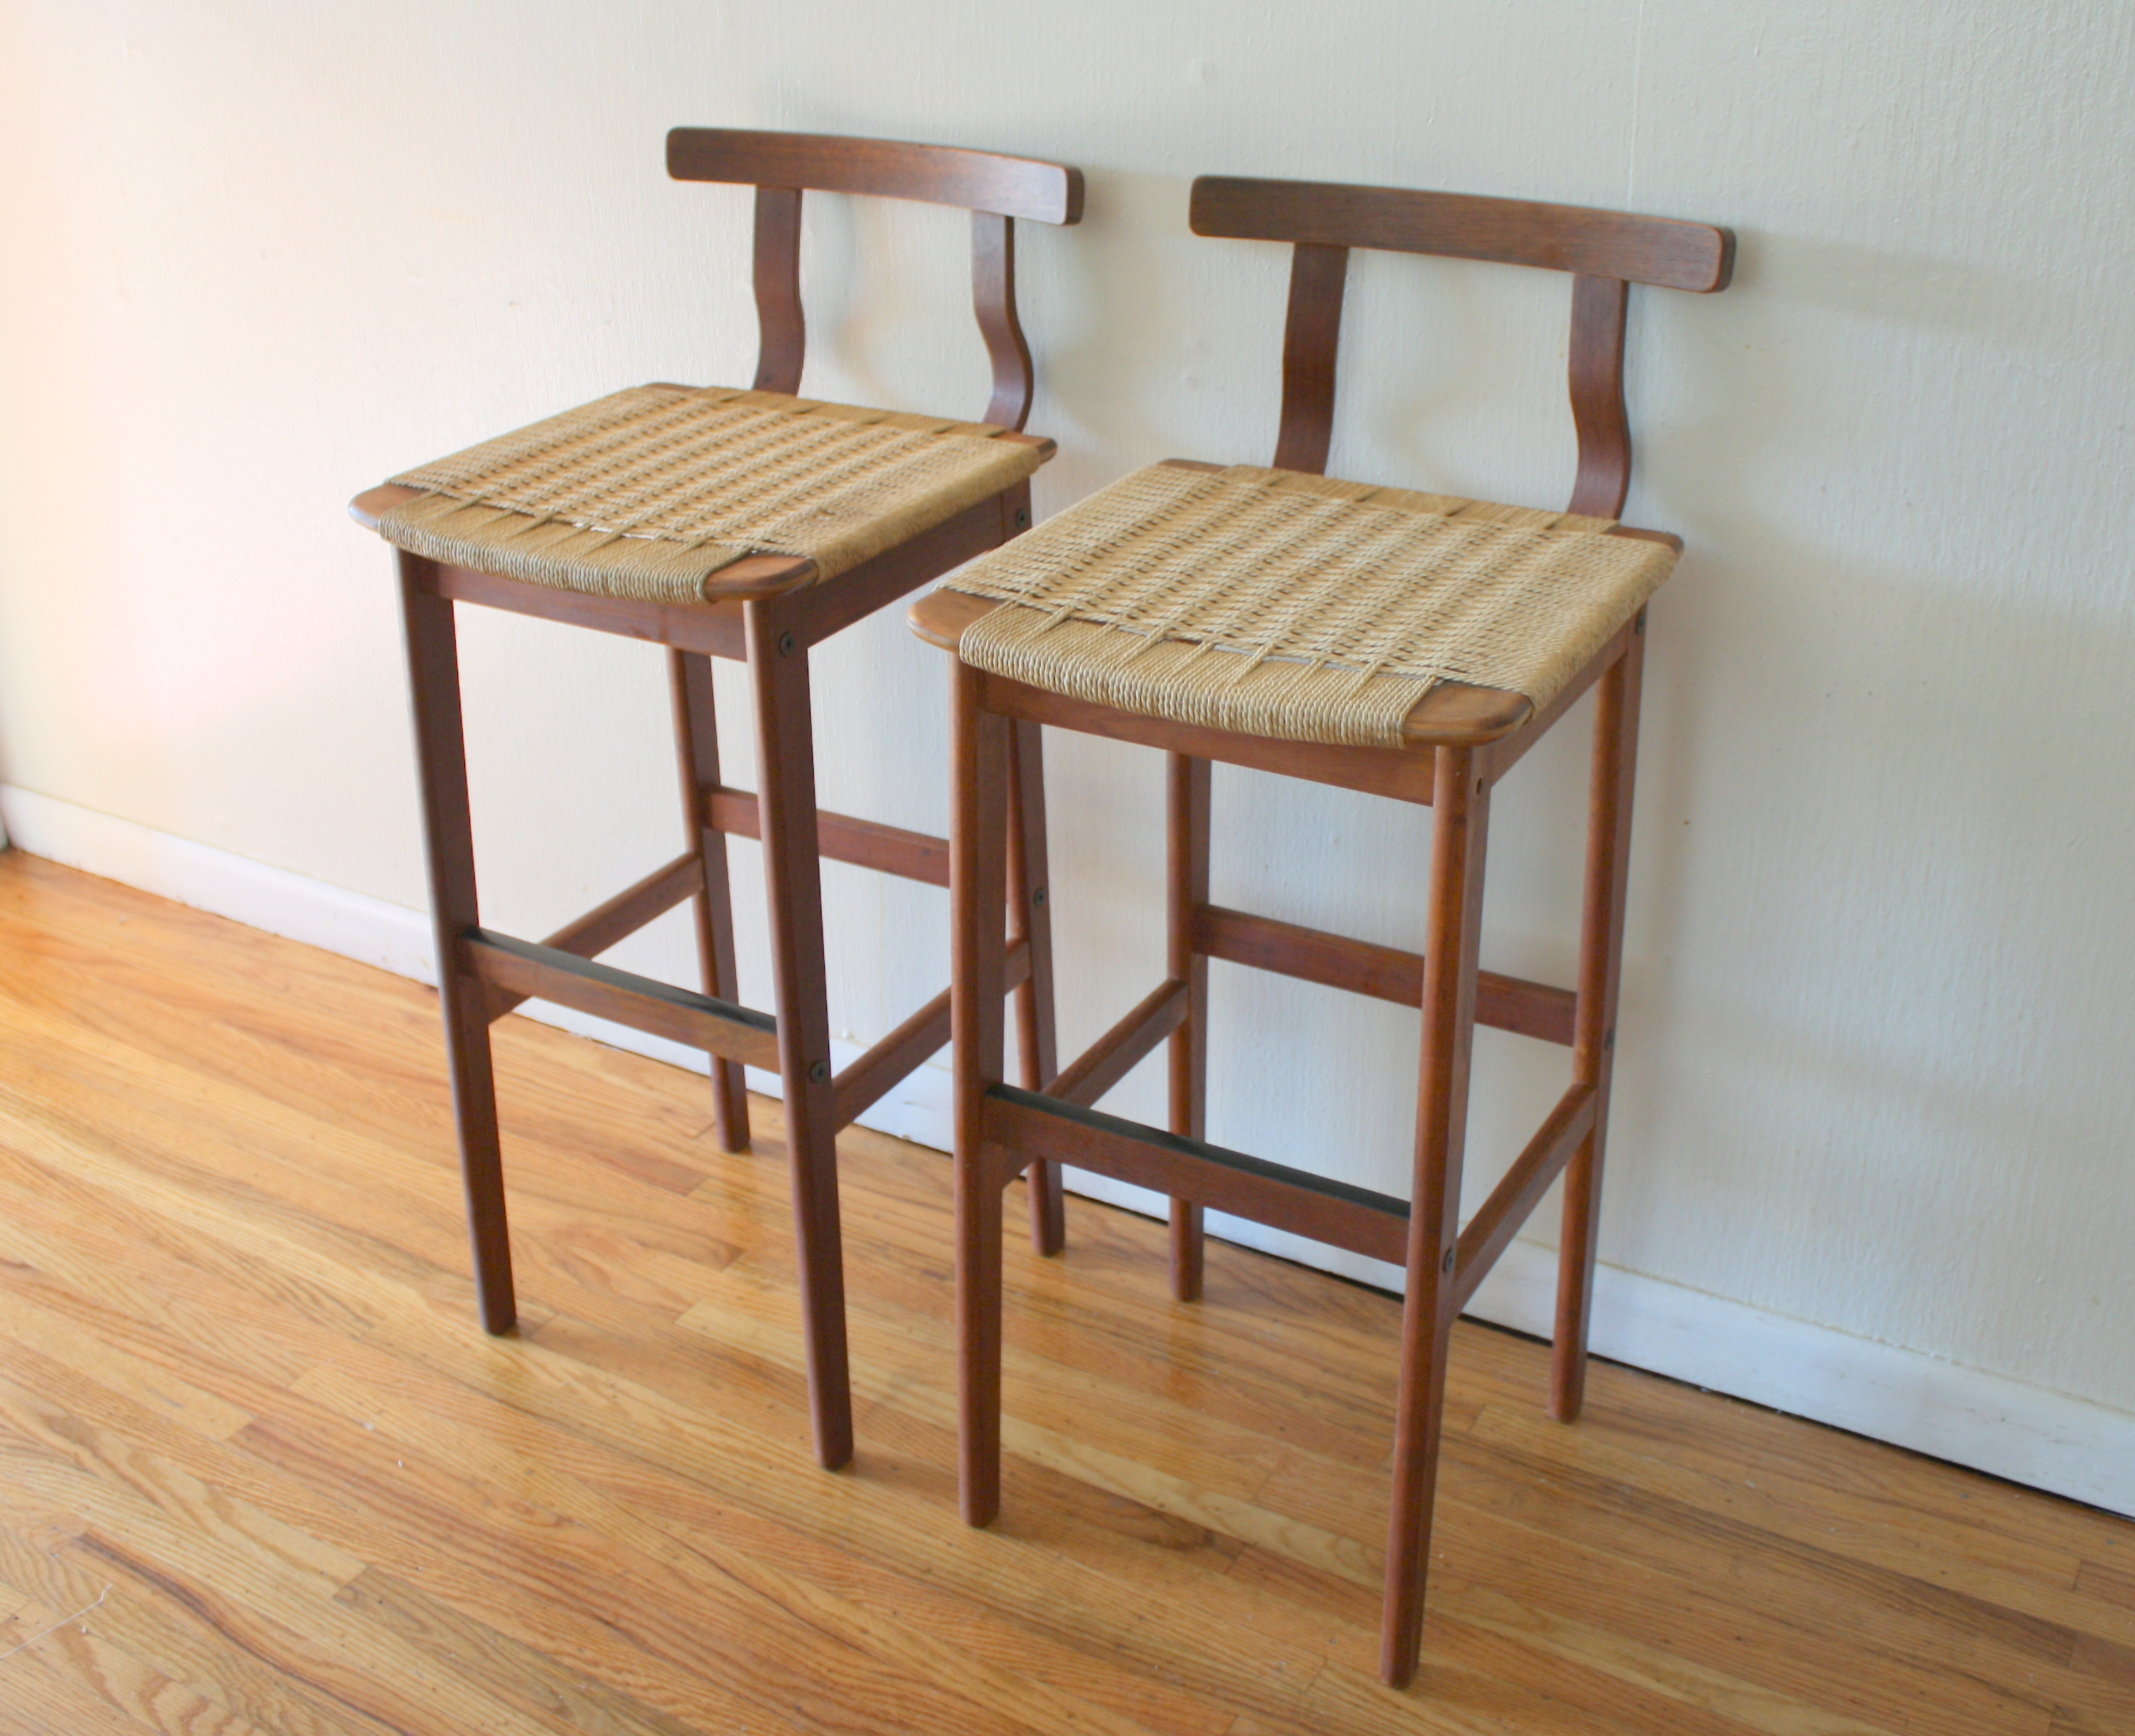 Modern Wood Counter Stool Mid Century Modern Danish Rope Stools Picked Vintage